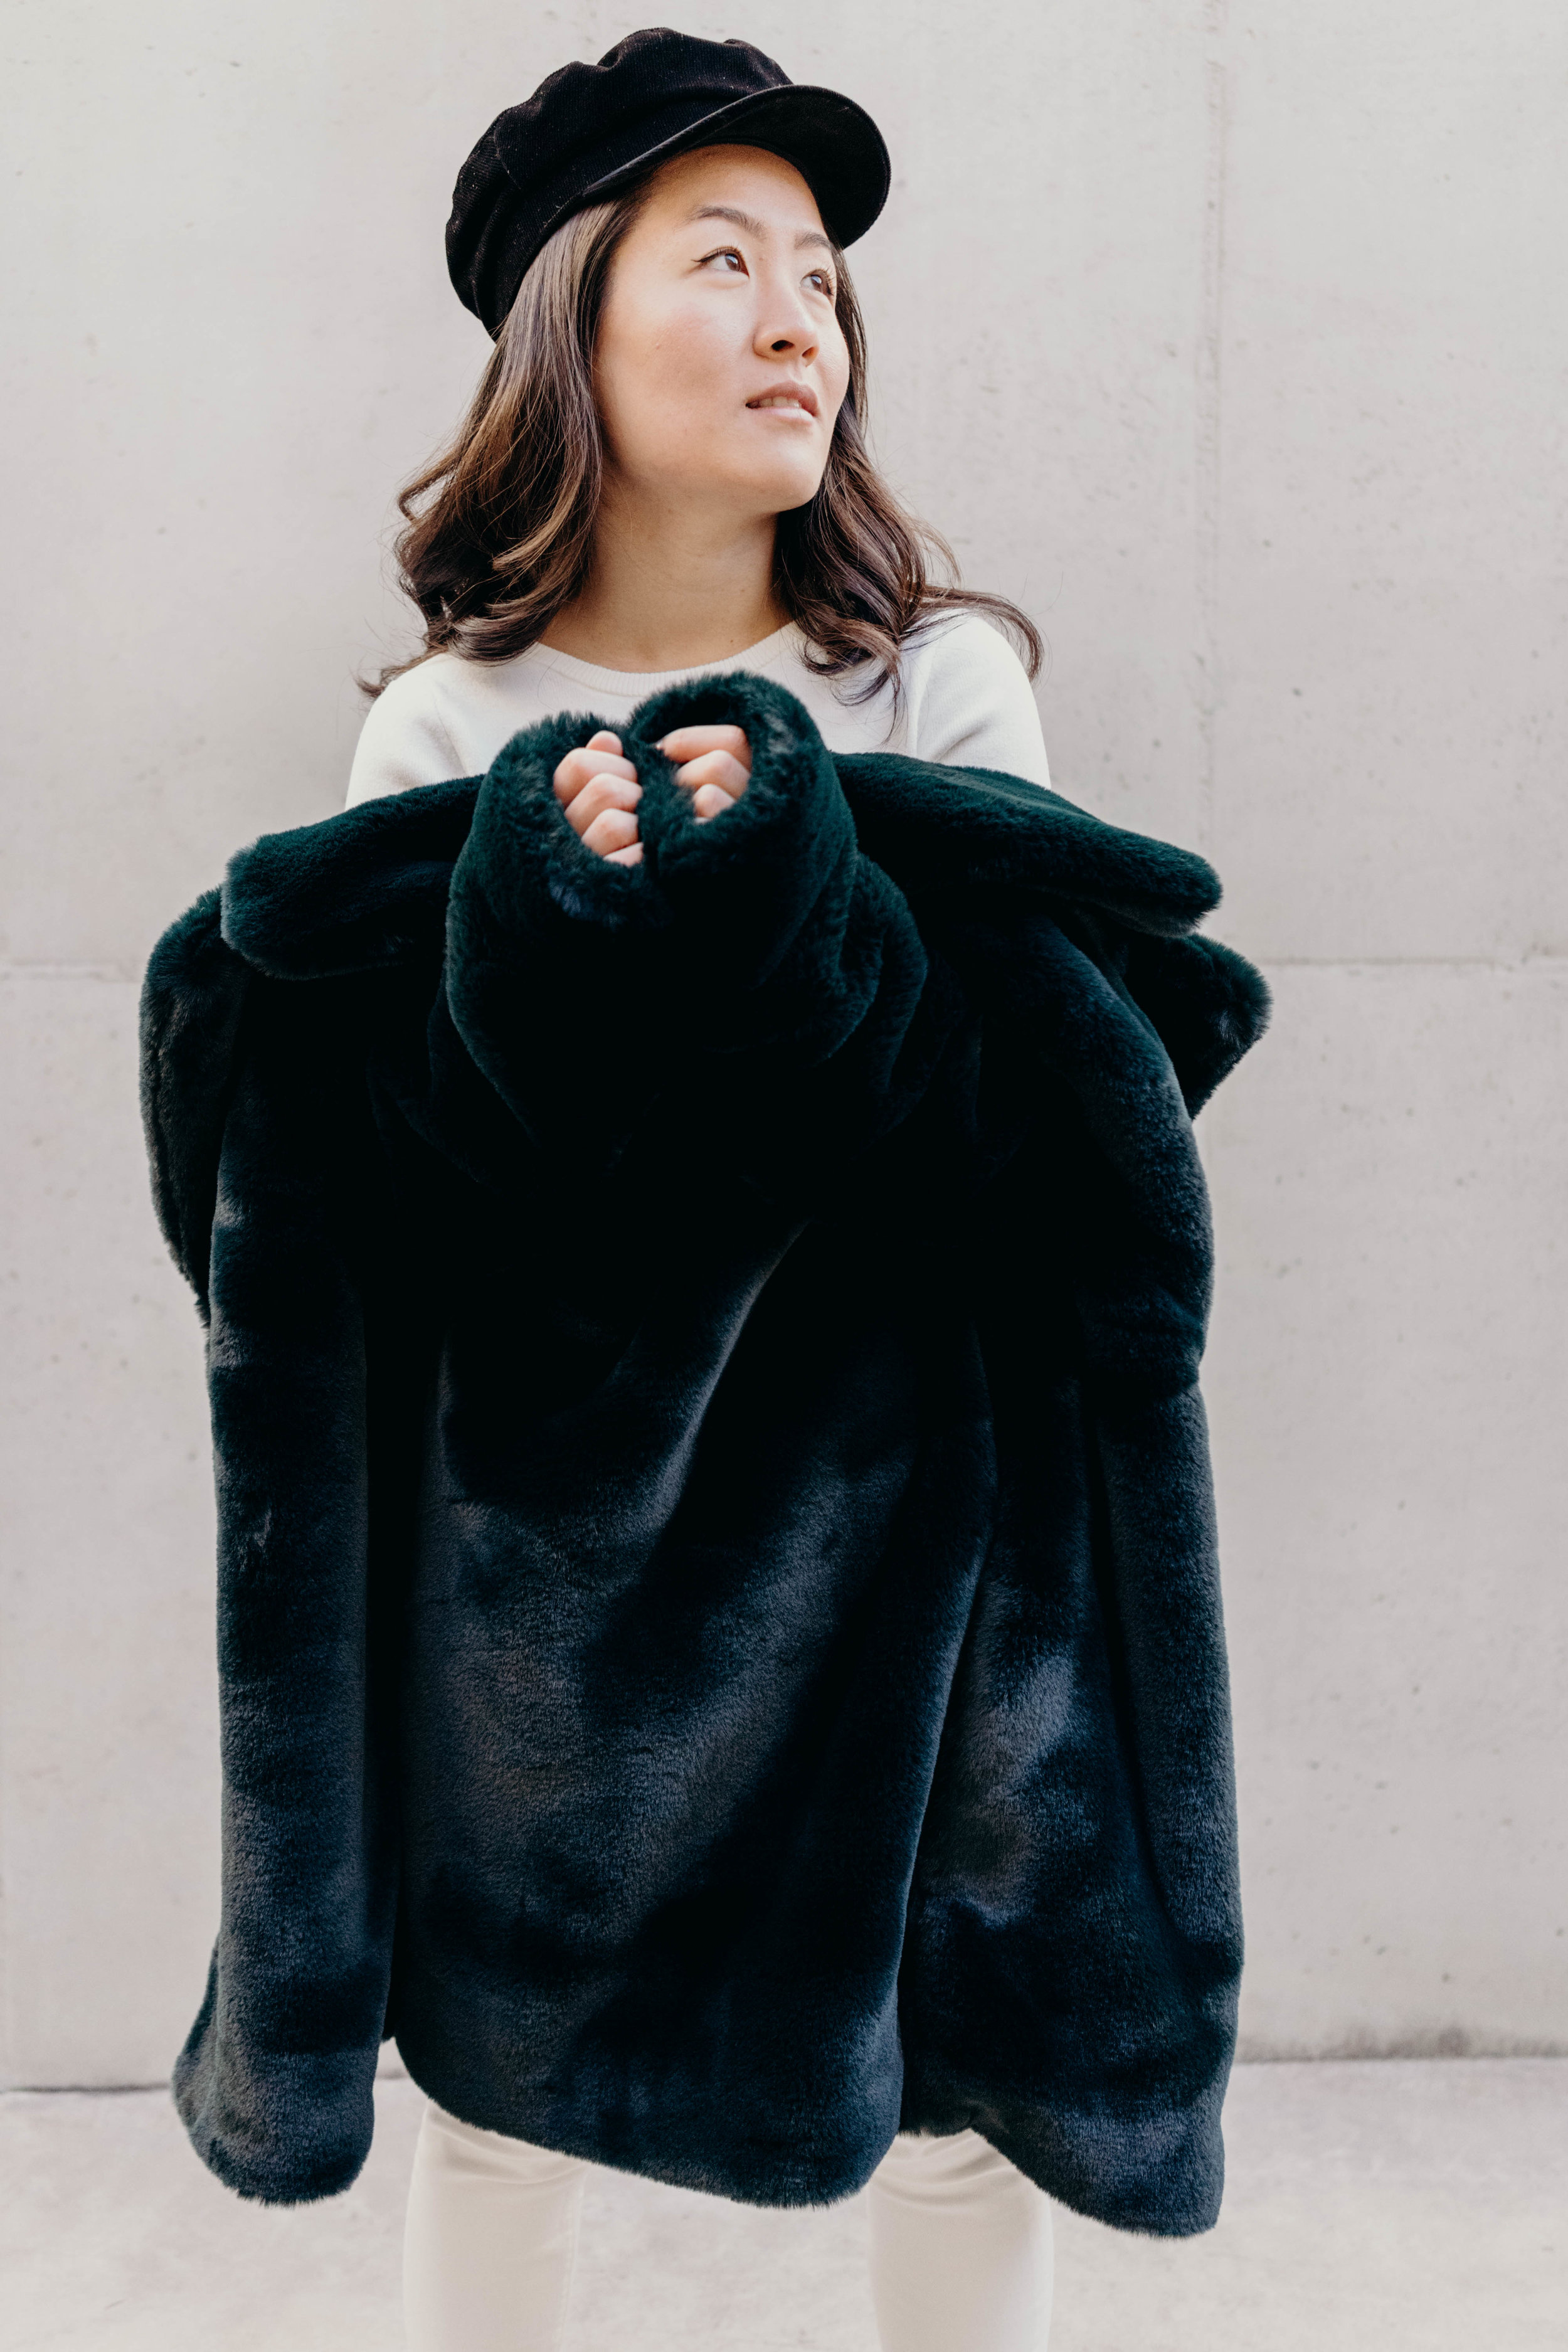 Setting Intentions for 2019 | On the Street Where We Live ( aretherelilactrees.com )  MANGO cross-back sweater, baker boy hat, & Other Stories emerald faux fur coat, booties, Everlane denim